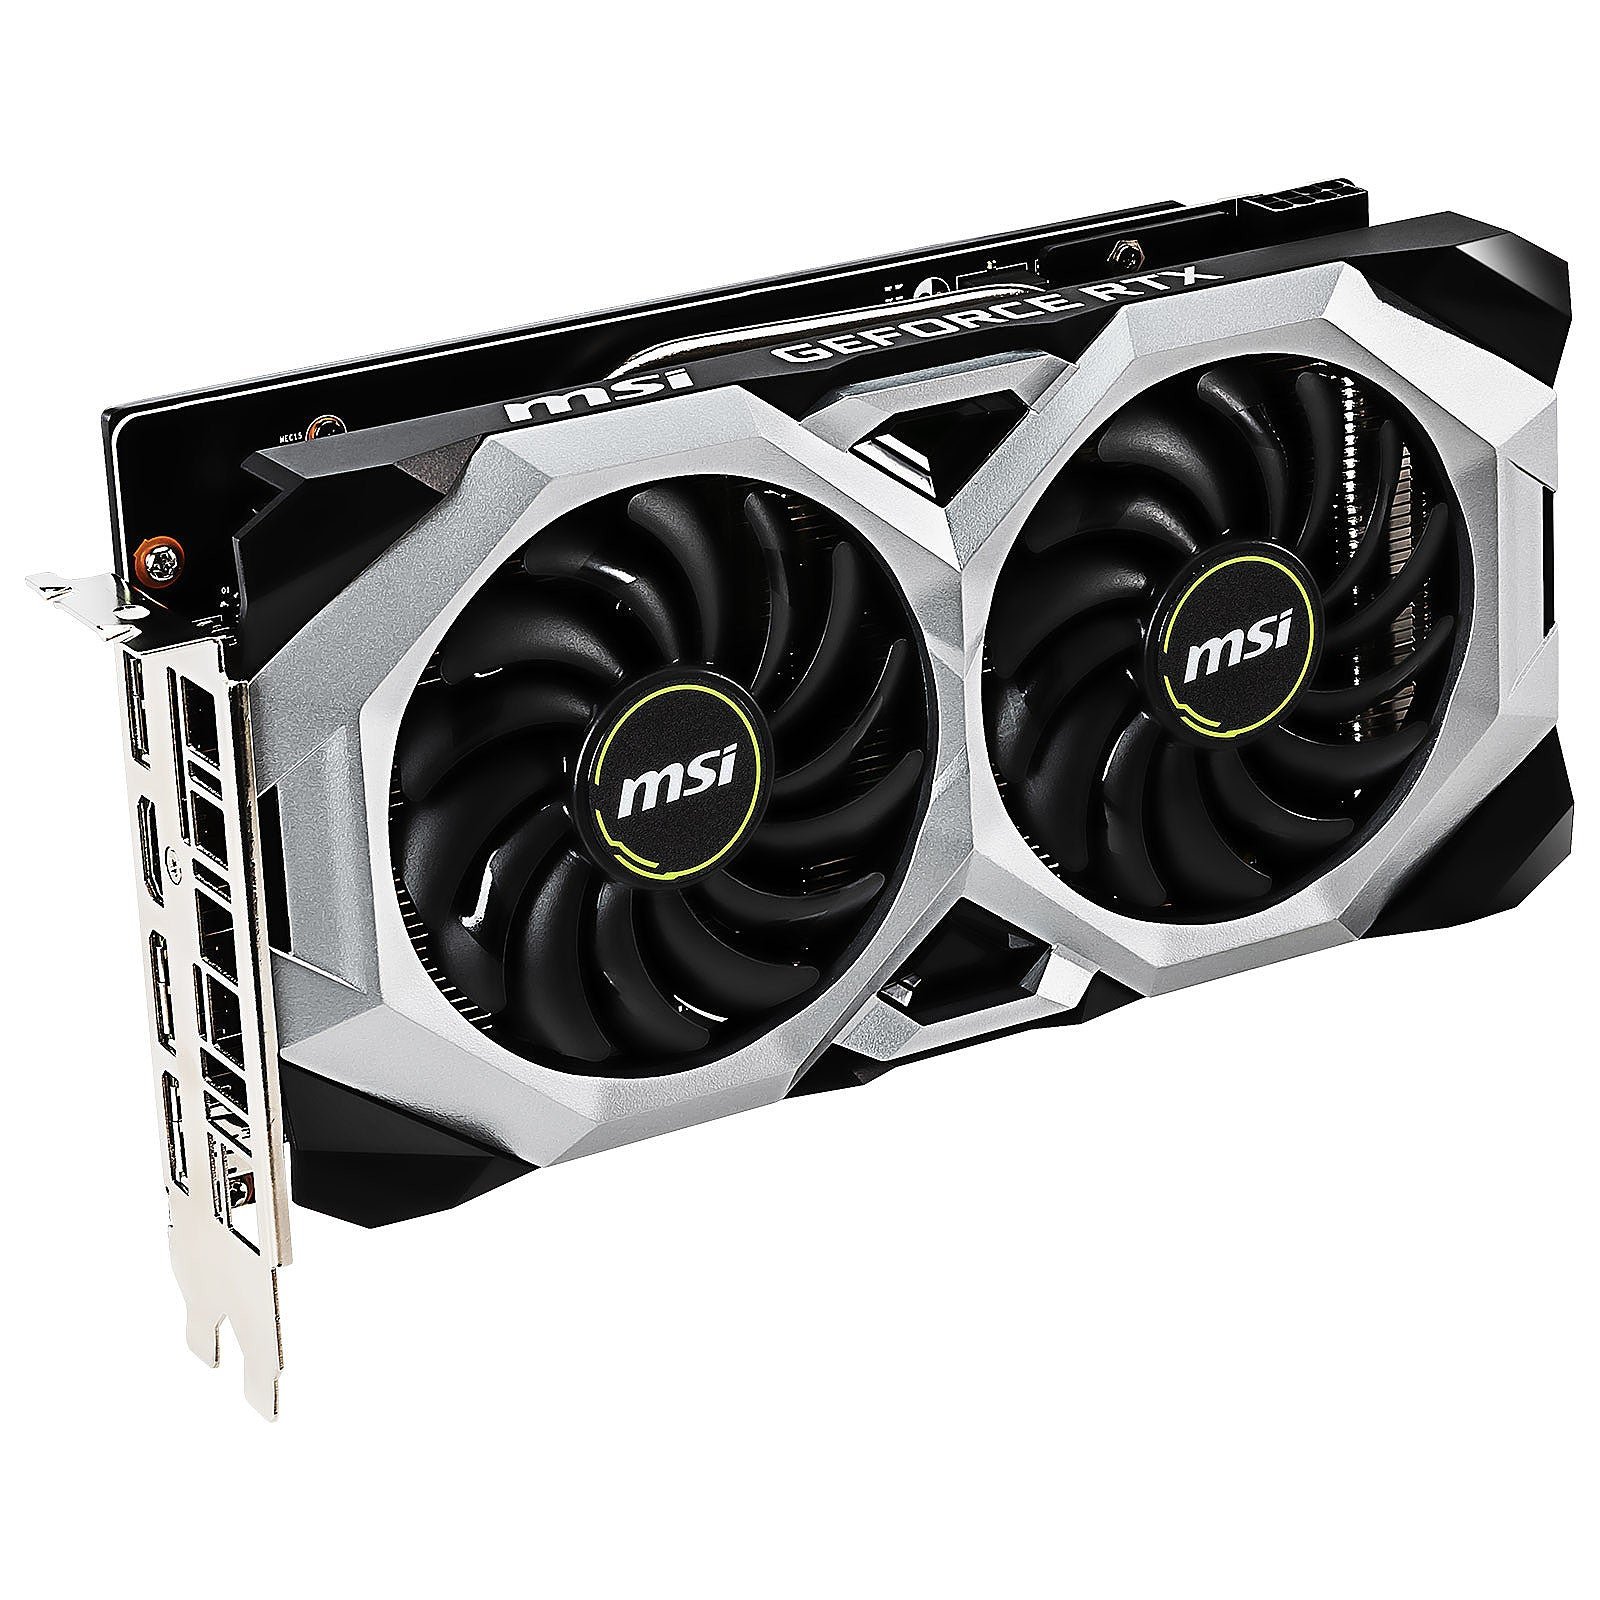 MSI GeForce RTX 2060 SUPER VENTUS GP OC 8 Go GDDR6 - HDMI/Tri DisplayPort - PCI Express (NVIDIA GeForce RTX 2060 SUPER)